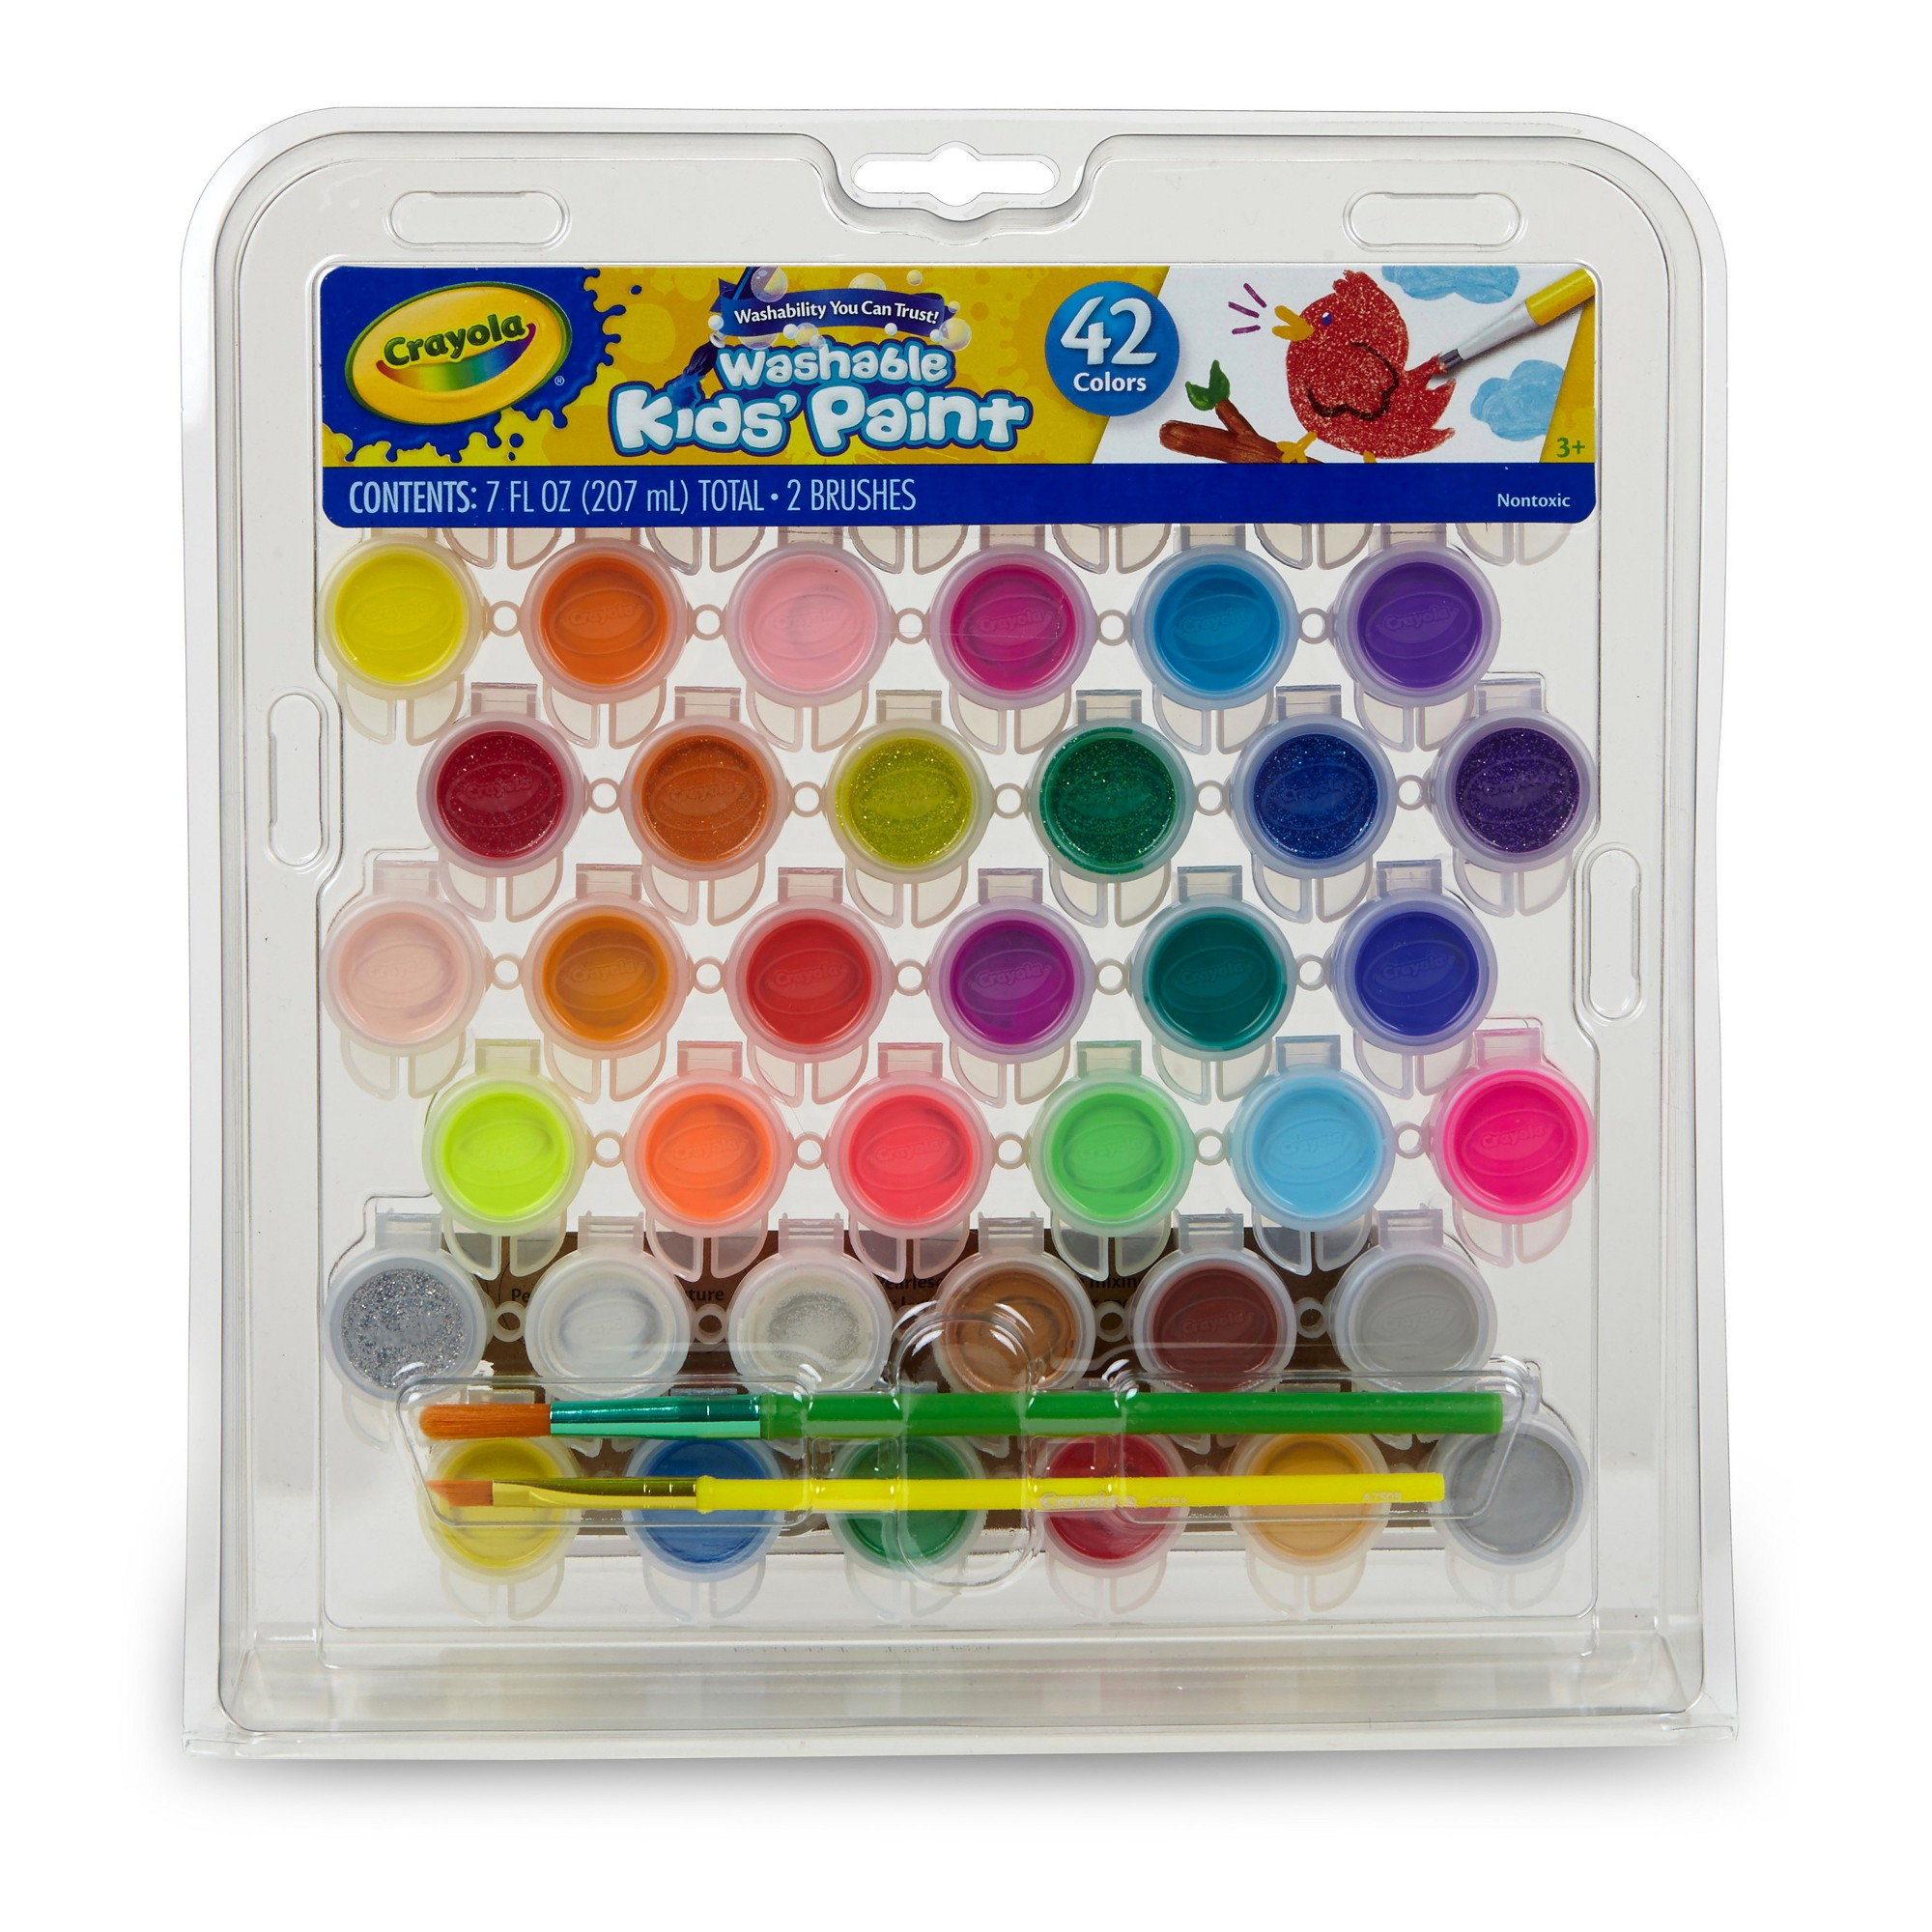 Crayola Washable Kids Paint Painting Supplies Gift For Kids